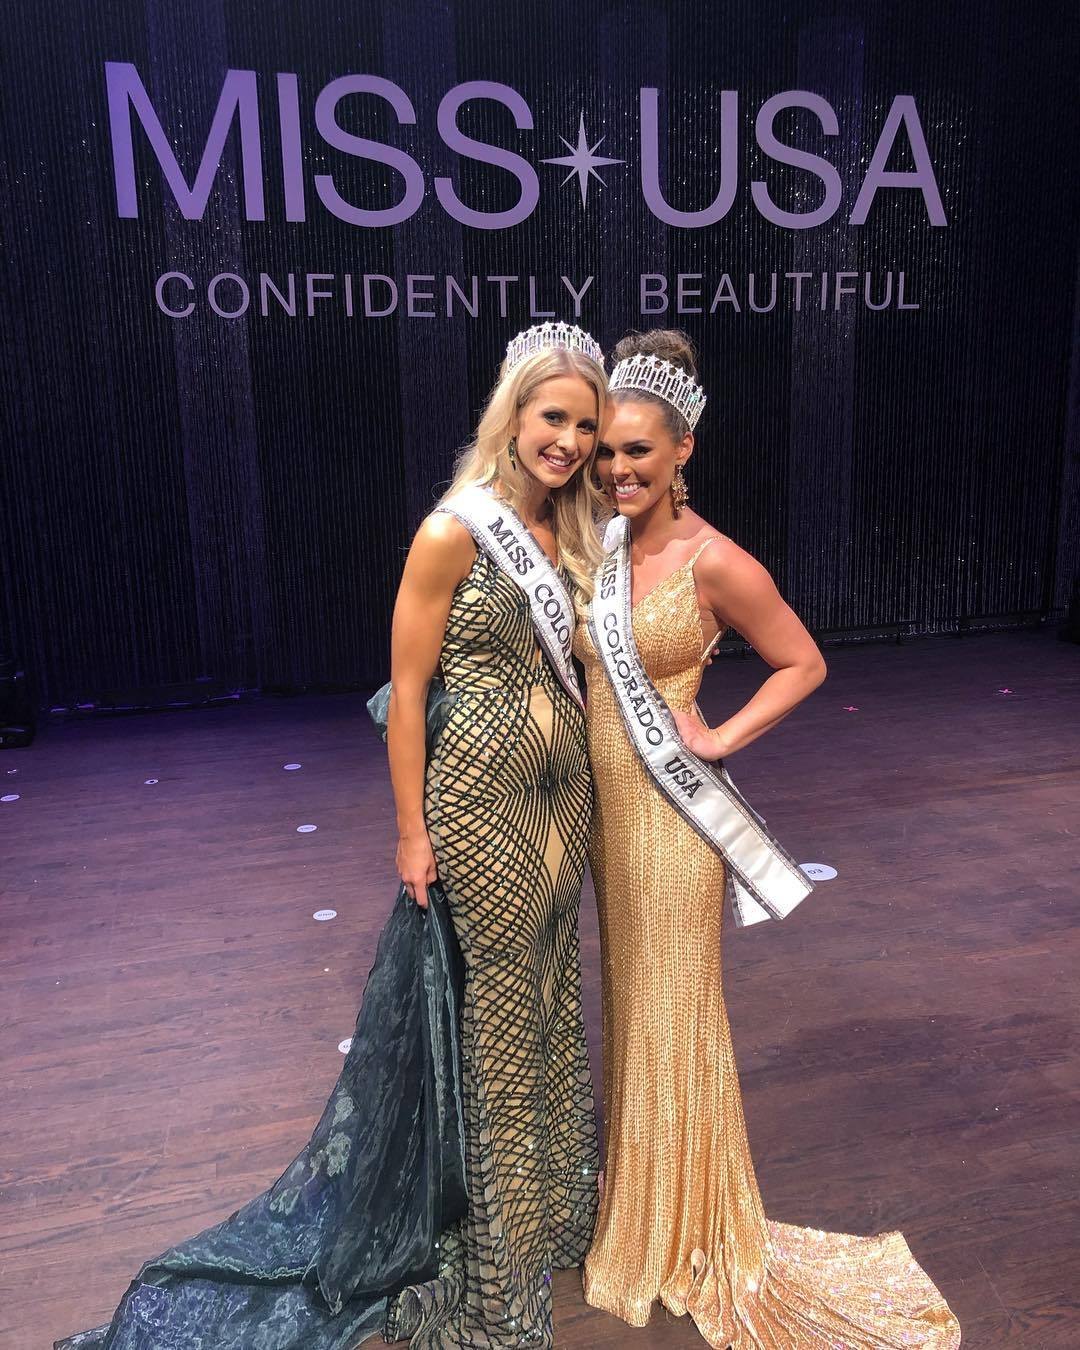 madison dorenkamp, miss colorado 2019. 43817828_2631485016868768_4699940738247961272_n